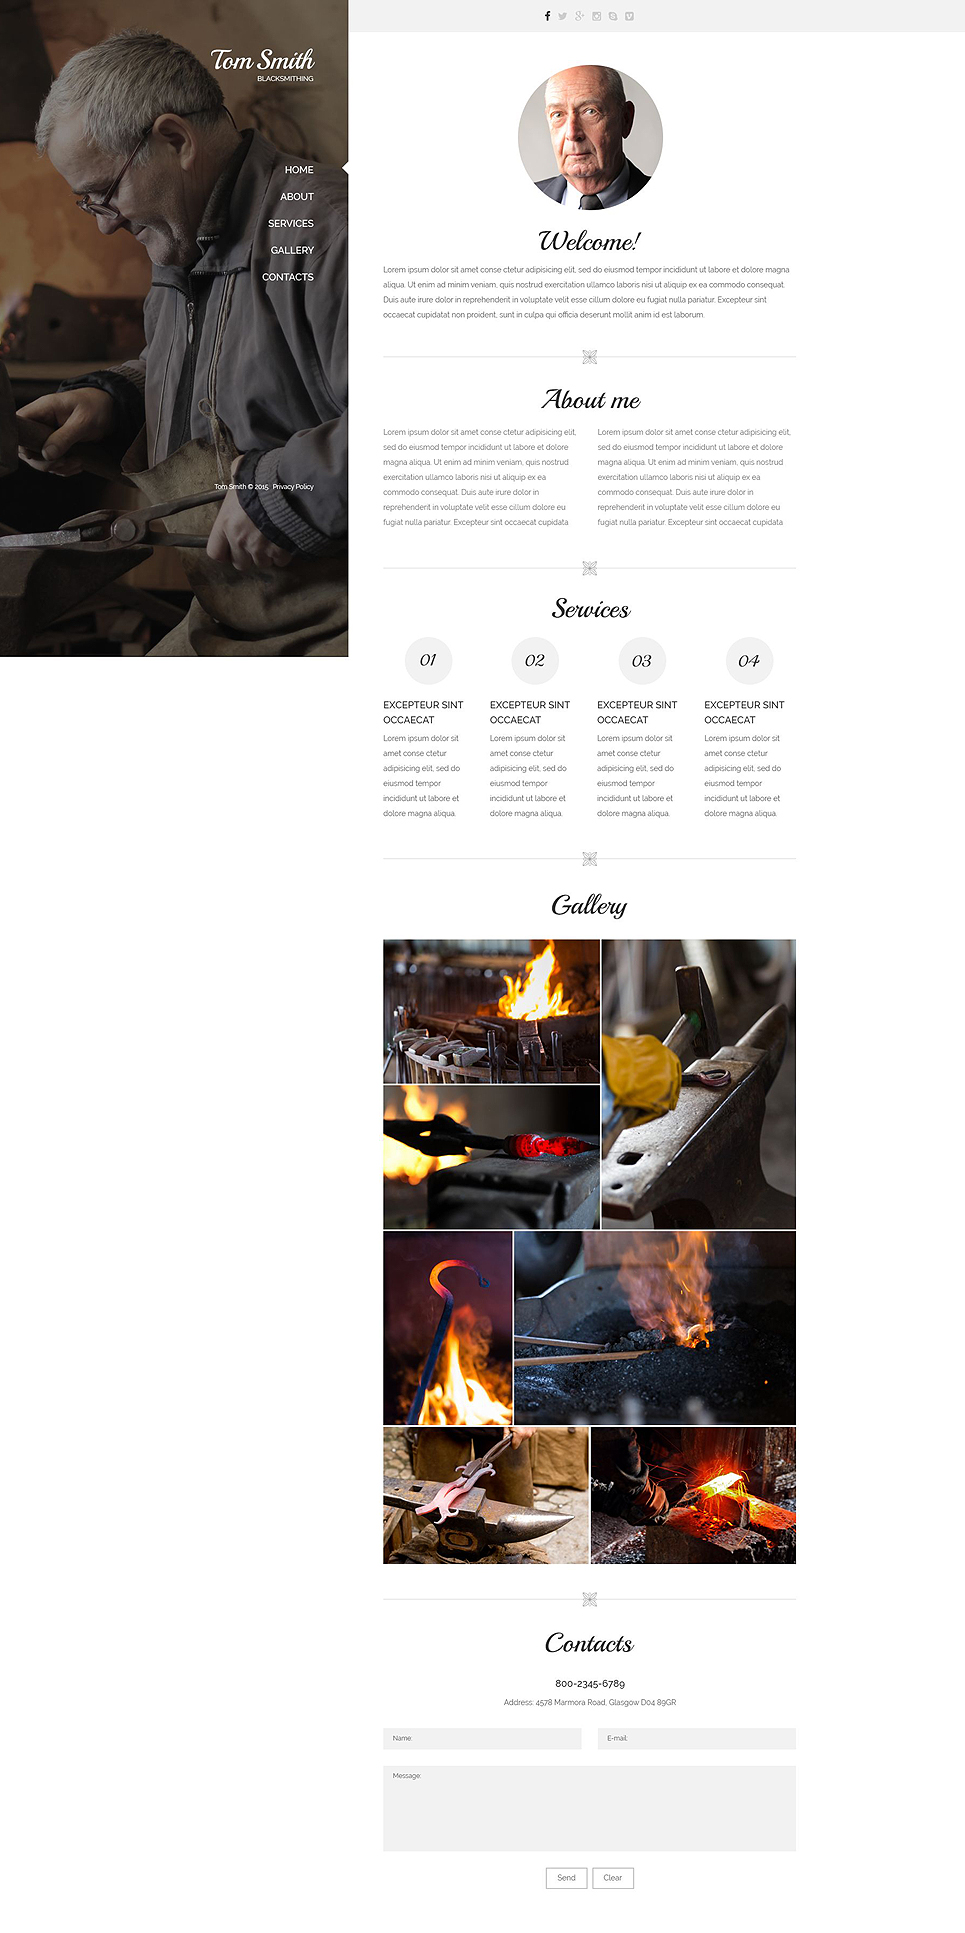 Blacksmith's Services template illustration image